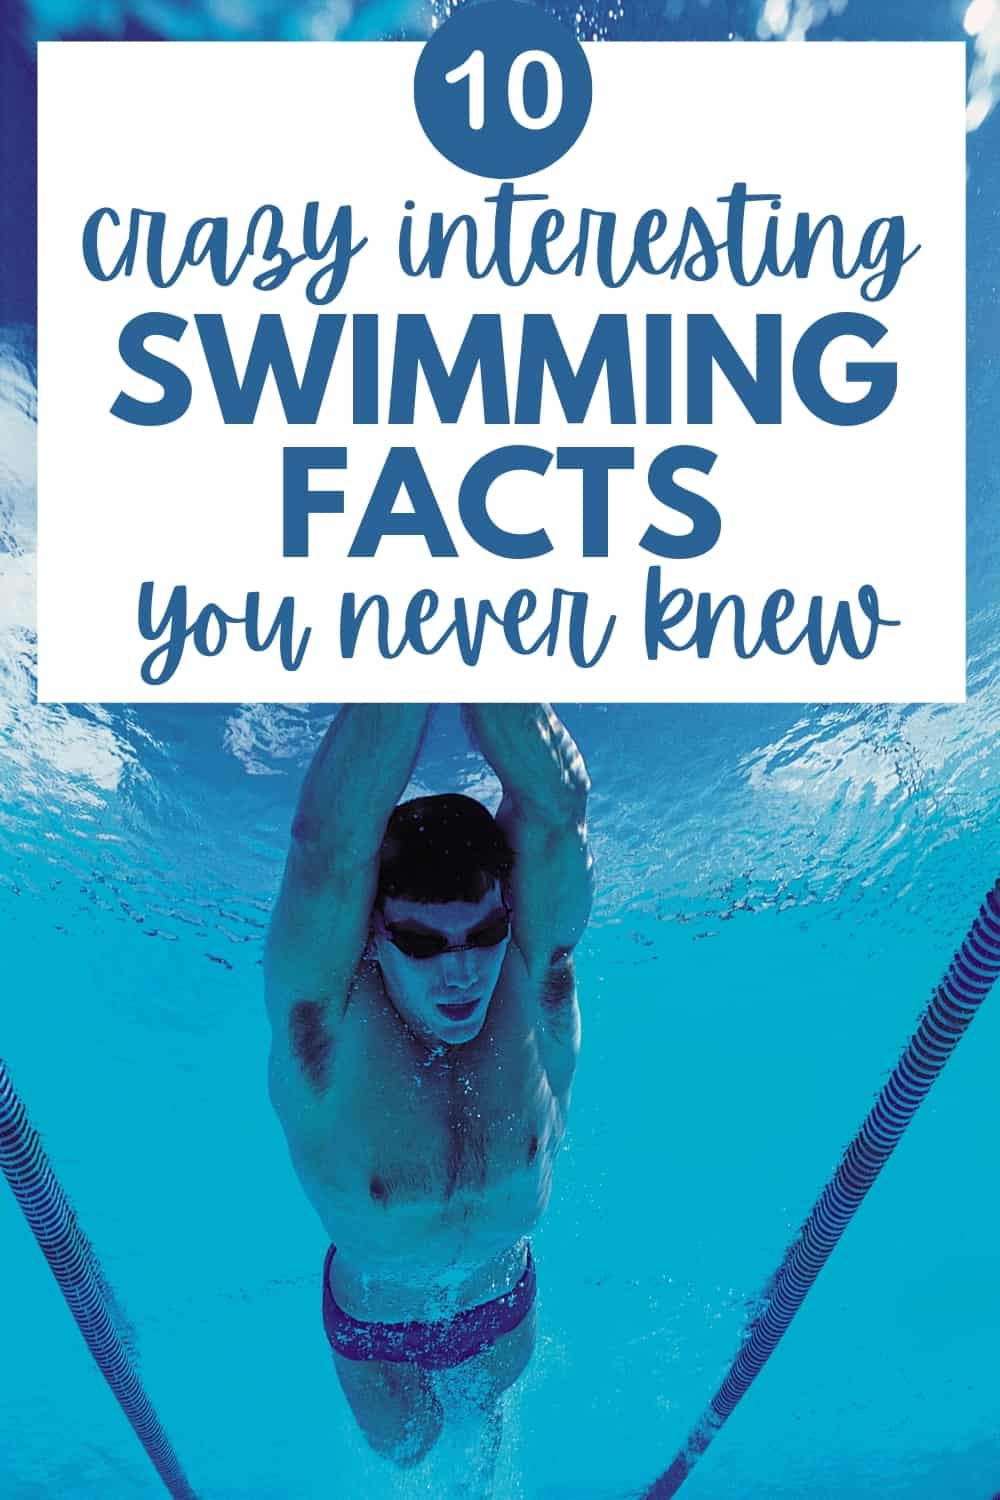 a man swimming underwater with a text overlay that says 10 crazy interesting swimming facts you never knew